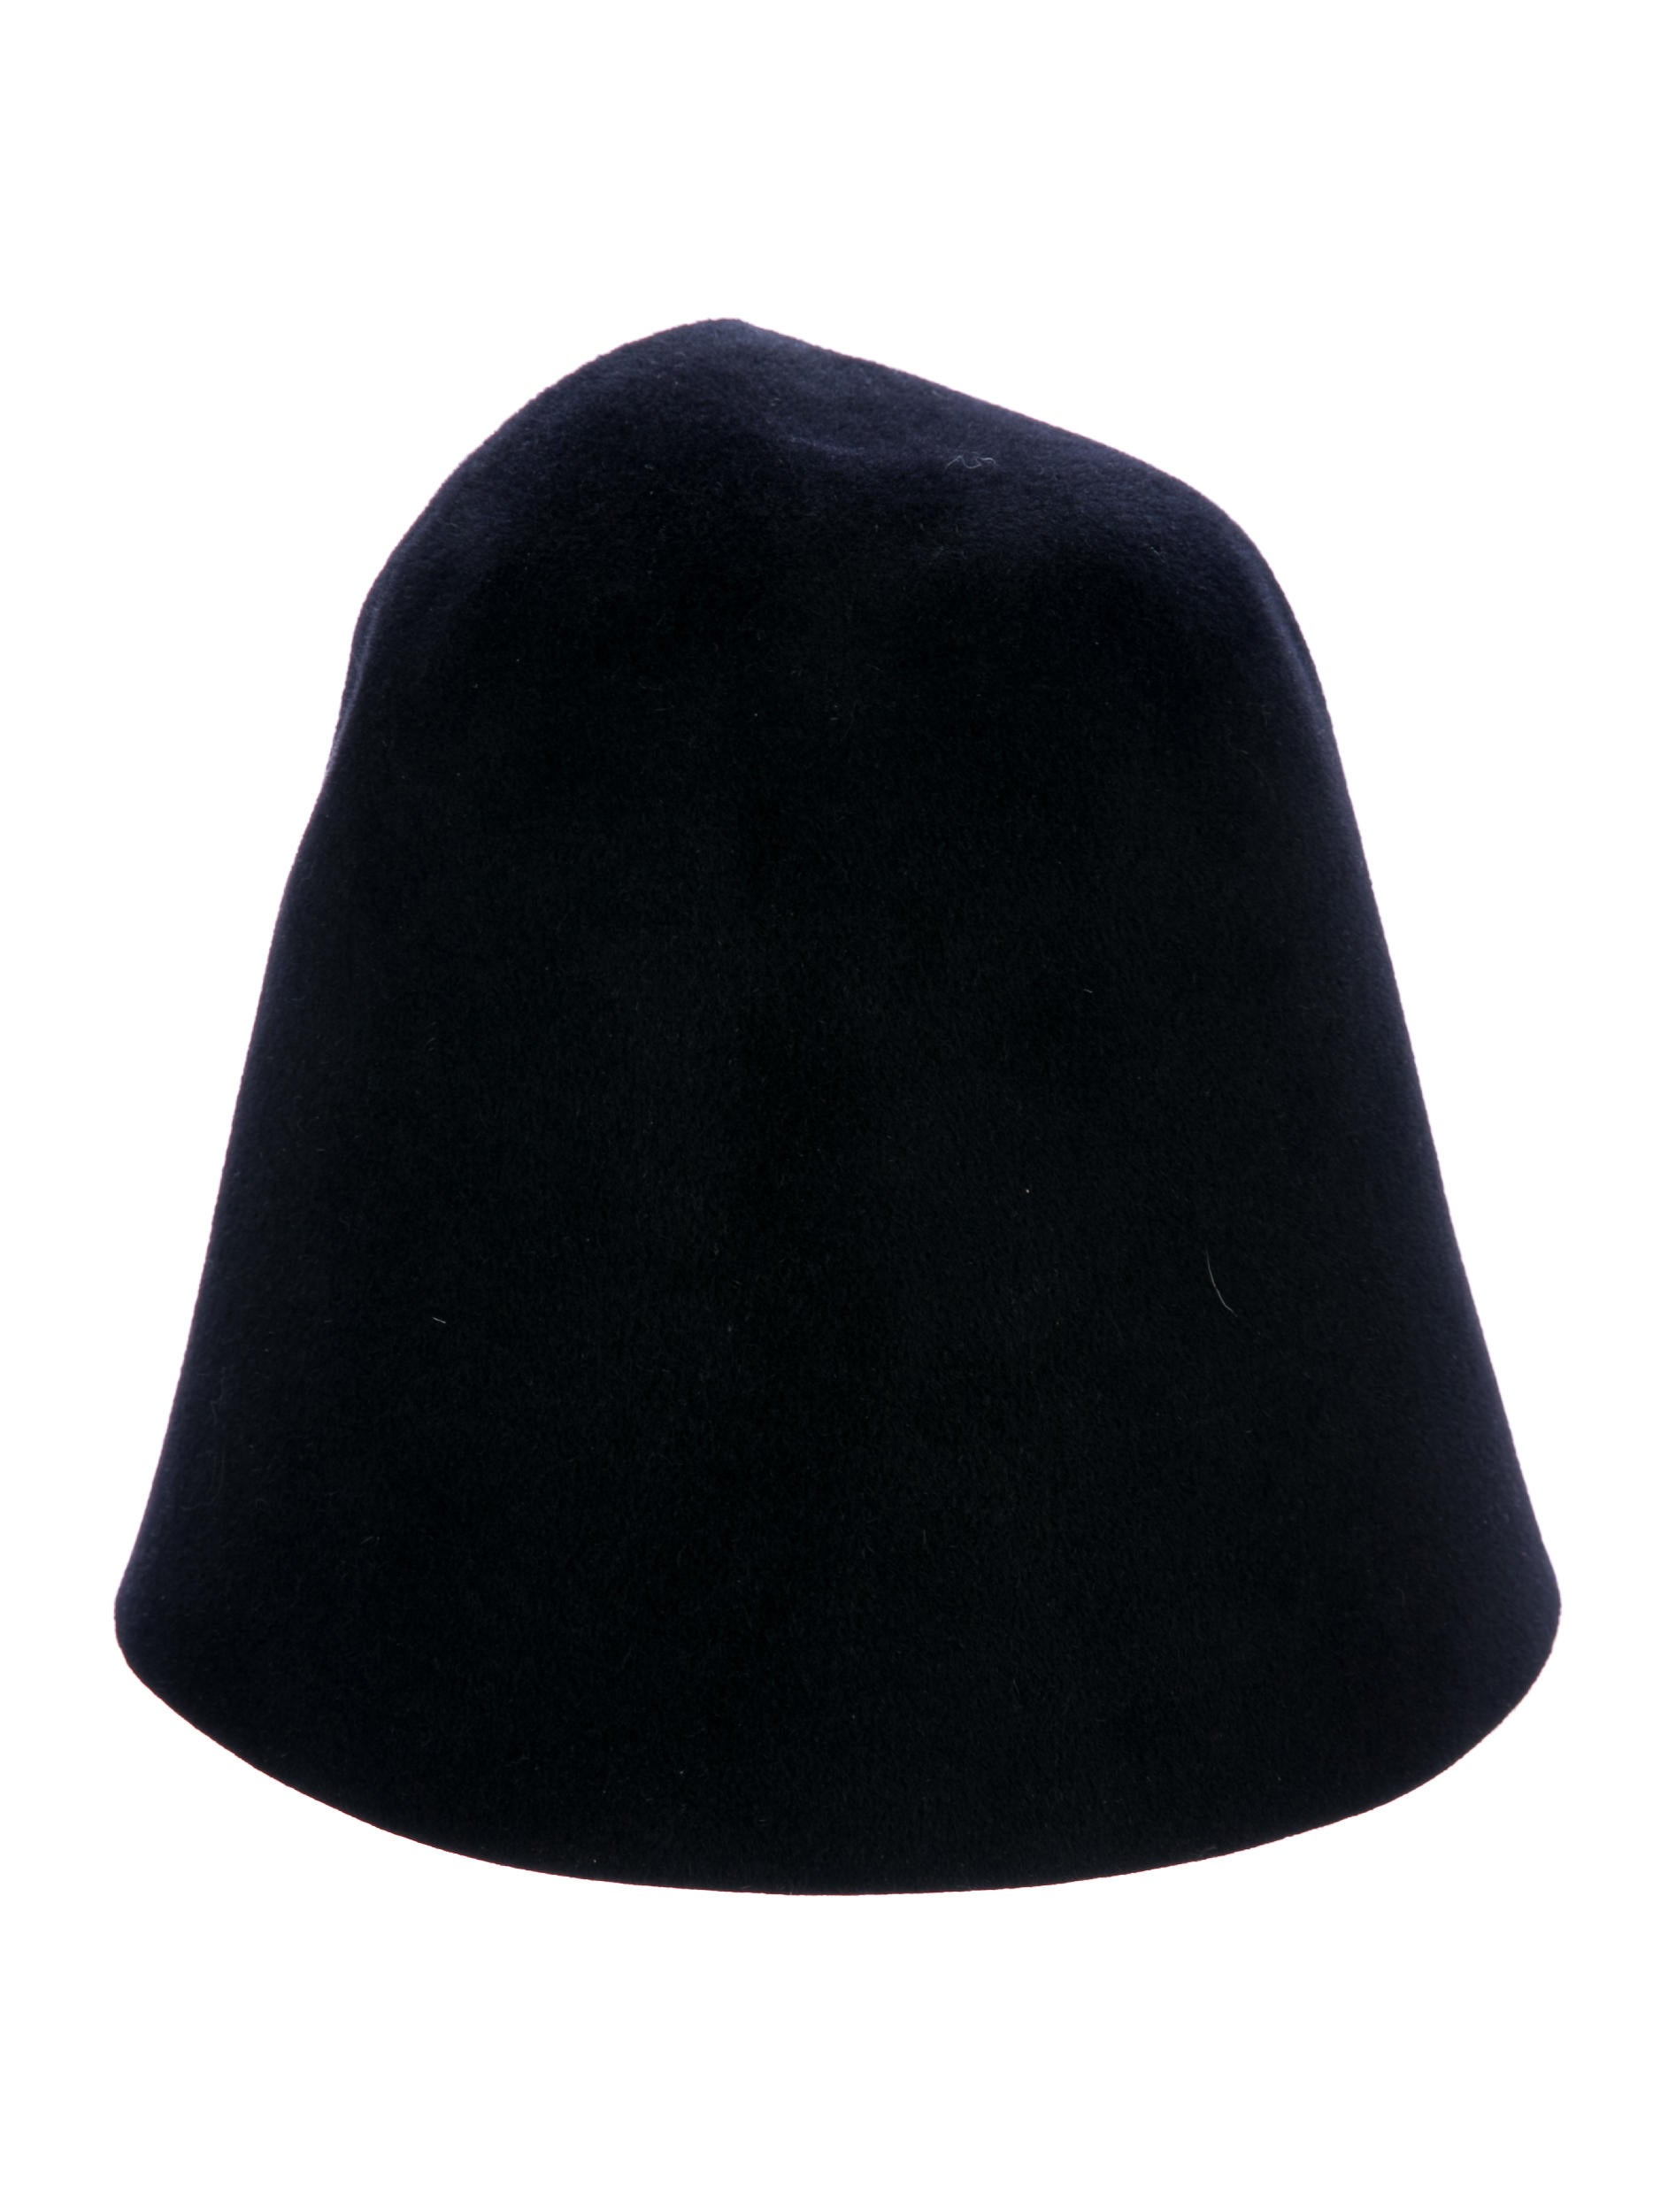 fc9f7417caf Yves Saint Laurent Felt Bucket Hat - Accessories - YVE72121